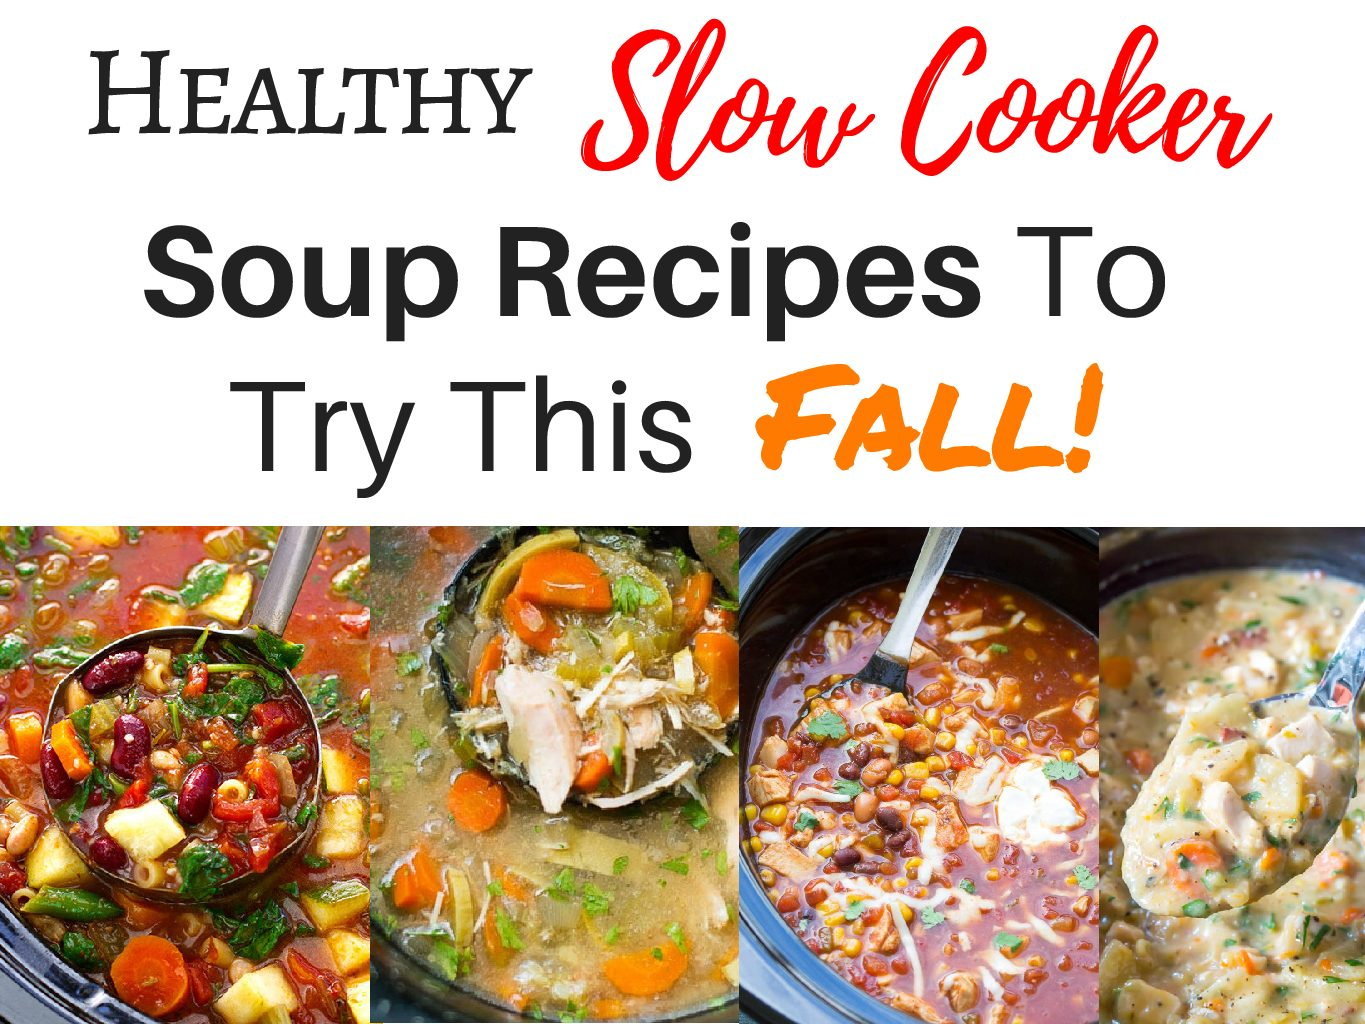 Slow cooker soup recipes that are easy and healthy for busy days youre going to absolutely love these recipes each is unique completely healthy and pretty simple forumfinder